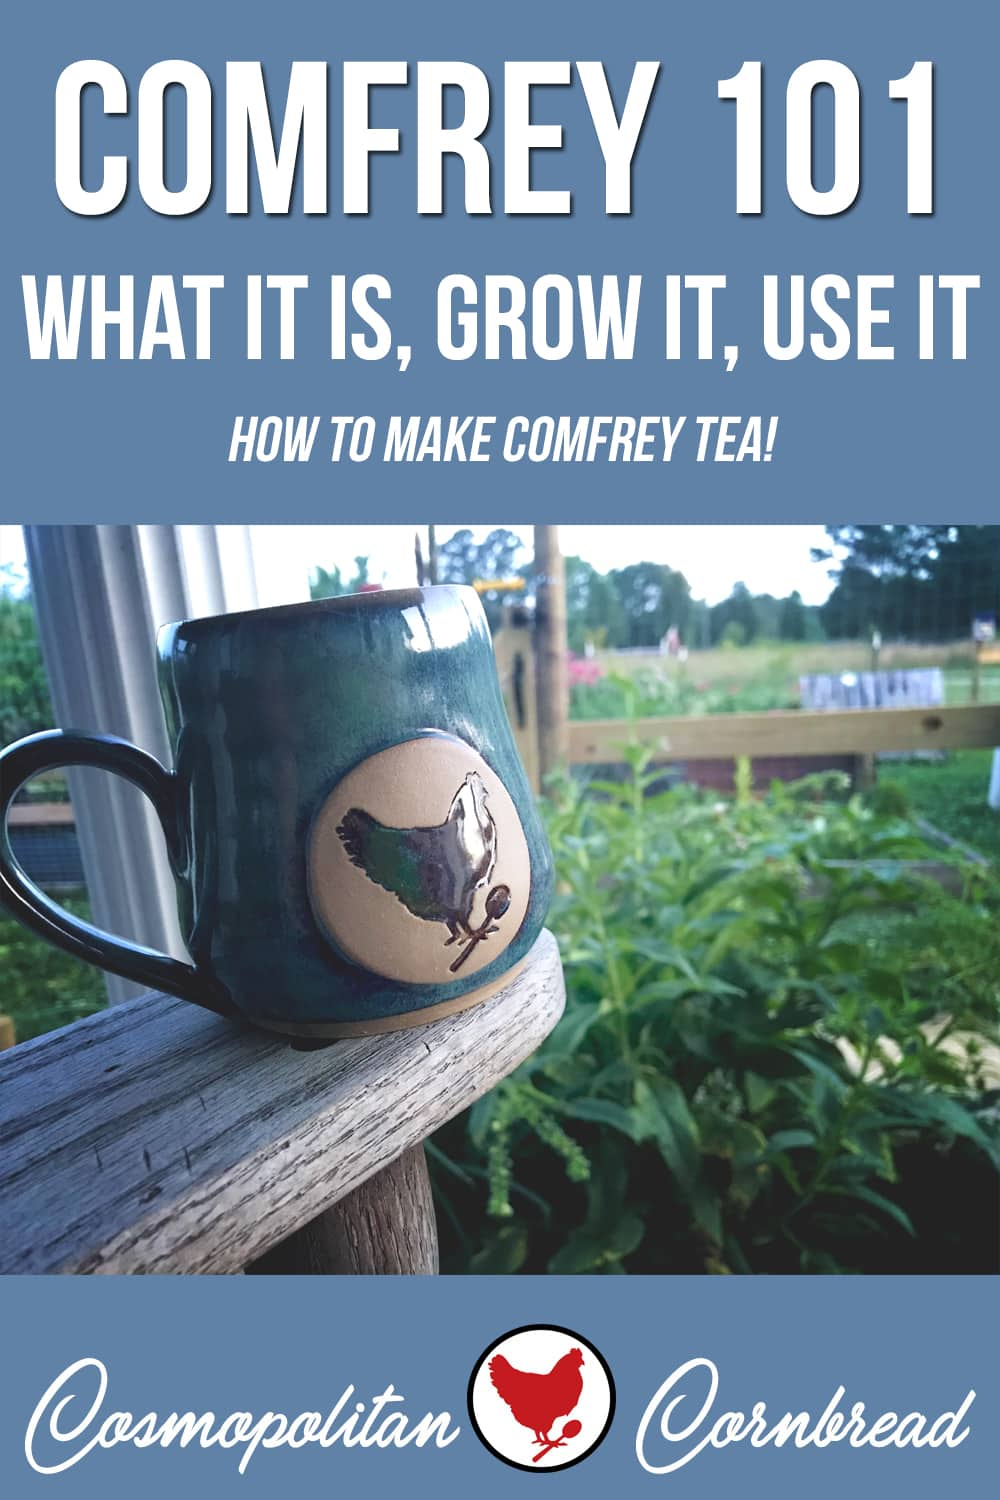 Comfrey is a great plant to grow in your garden. It can be used many ways on the homestead. Today I shared what comfrey is used for, what I personally use it for, and how to grow it. Also- how to make Comfrey Tea for your garden!